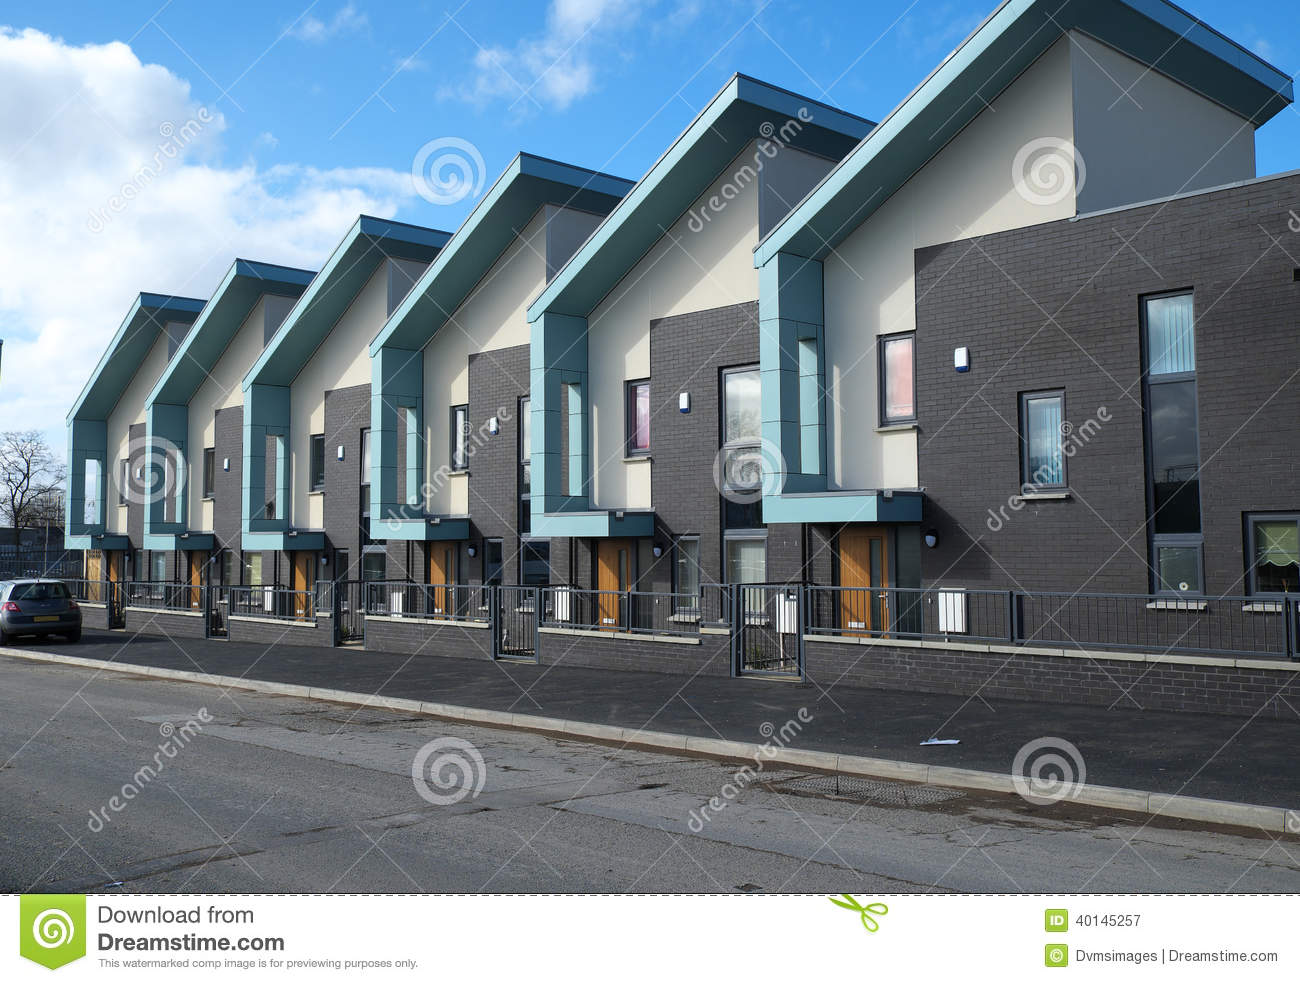 Row of modern houses in West Gorton, Manchester, England.